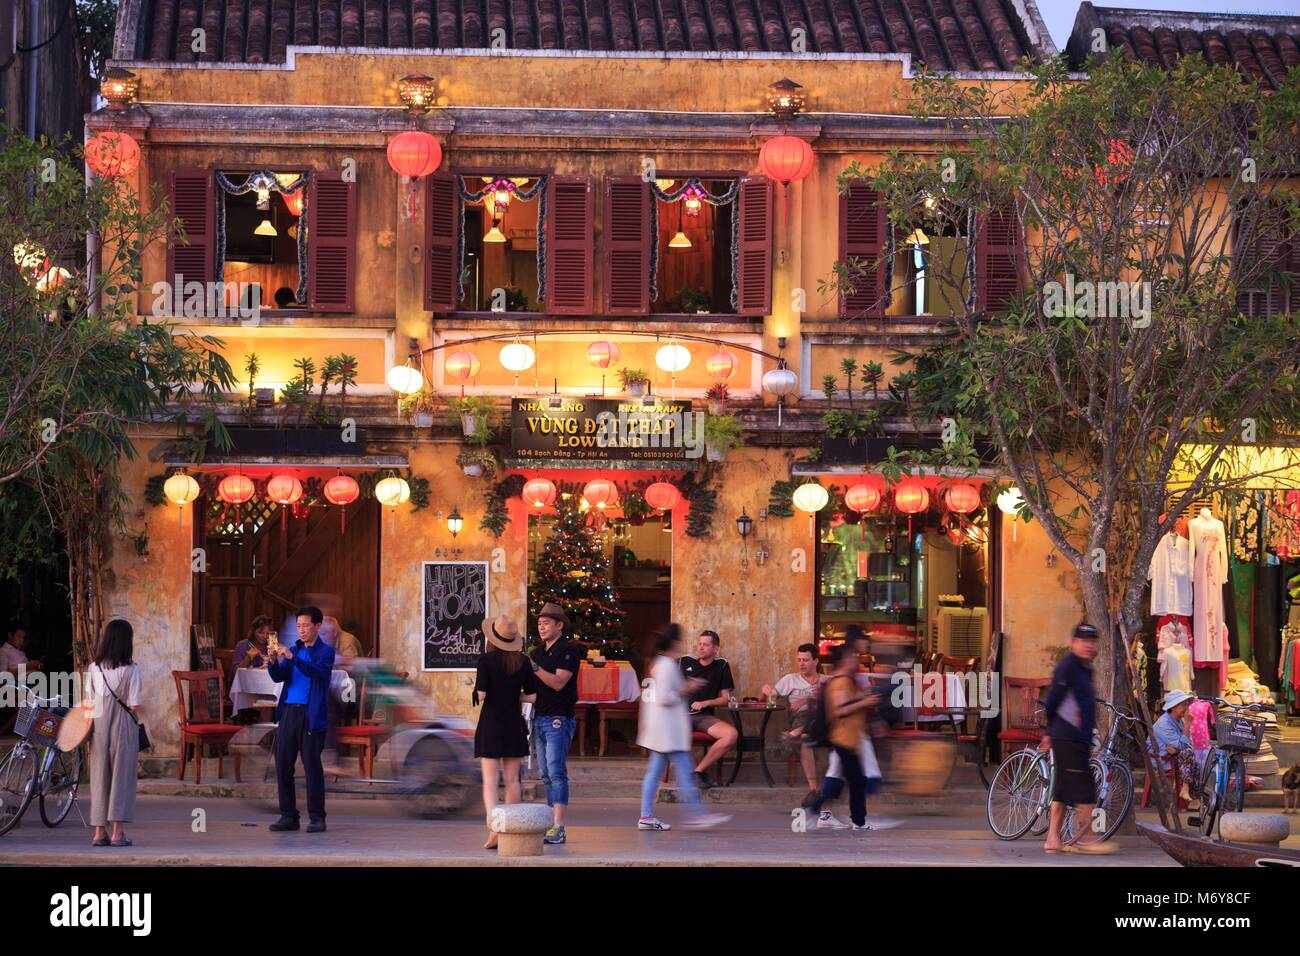 Cafes and restaurants line the Thu Bon River in the old town of Hoi An, Vietnam Stock Photo